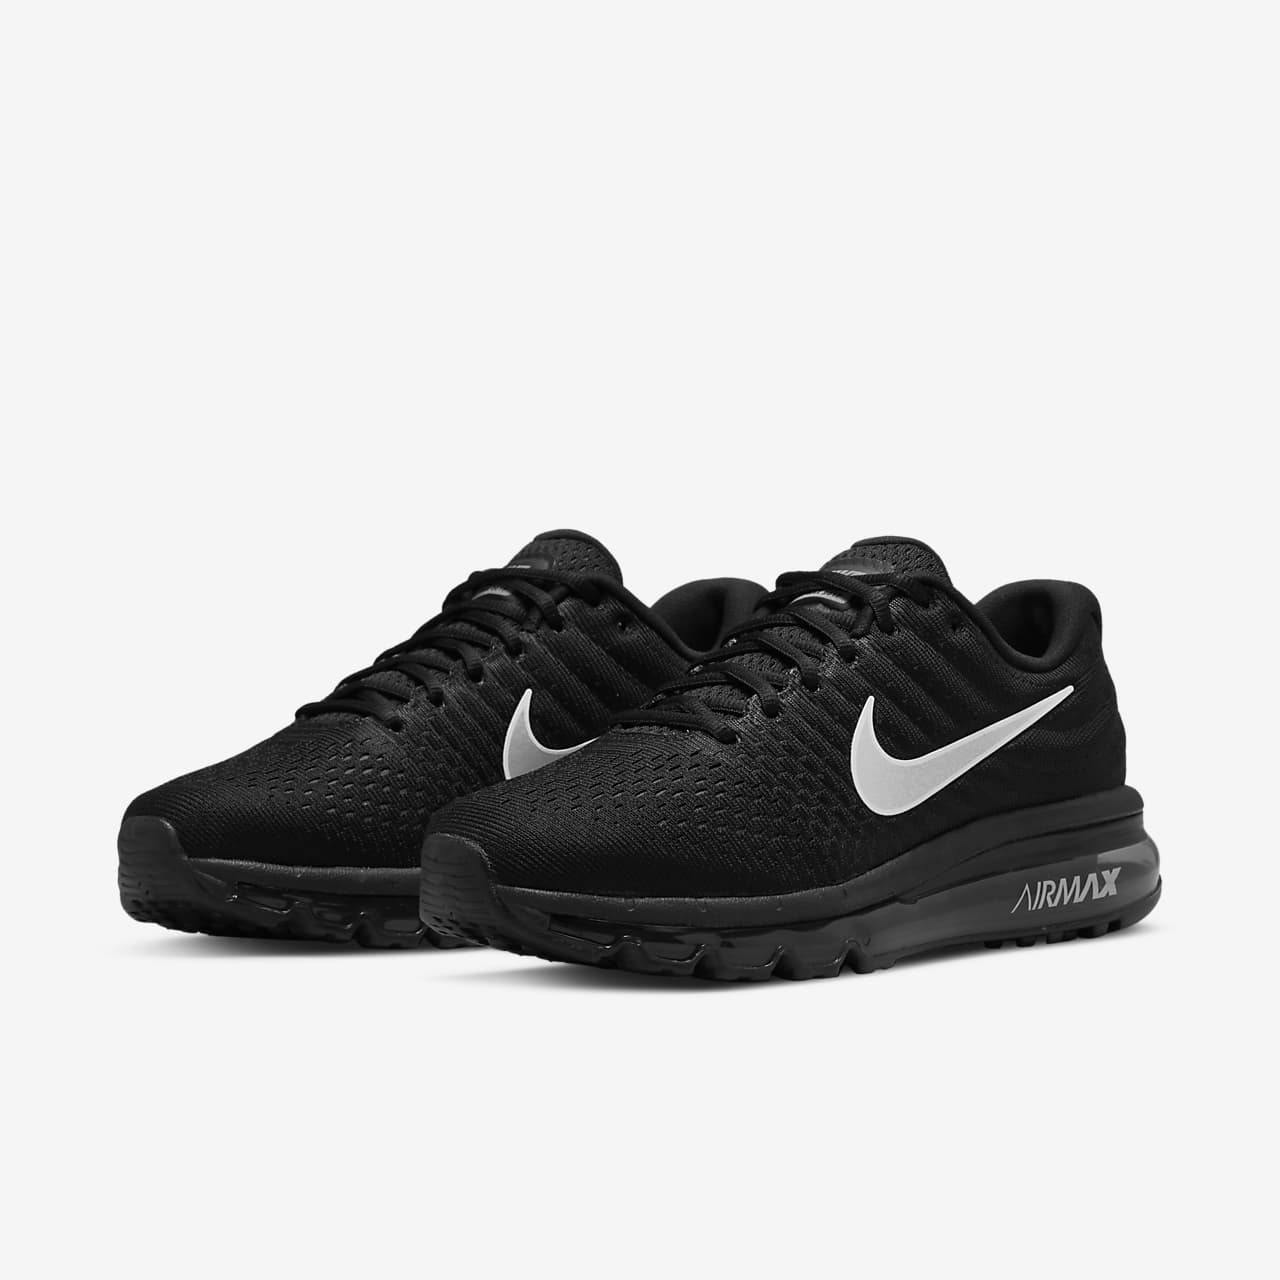 33385d898585 Nike Air Max 2017 Women s Shoe. Nike.com CA